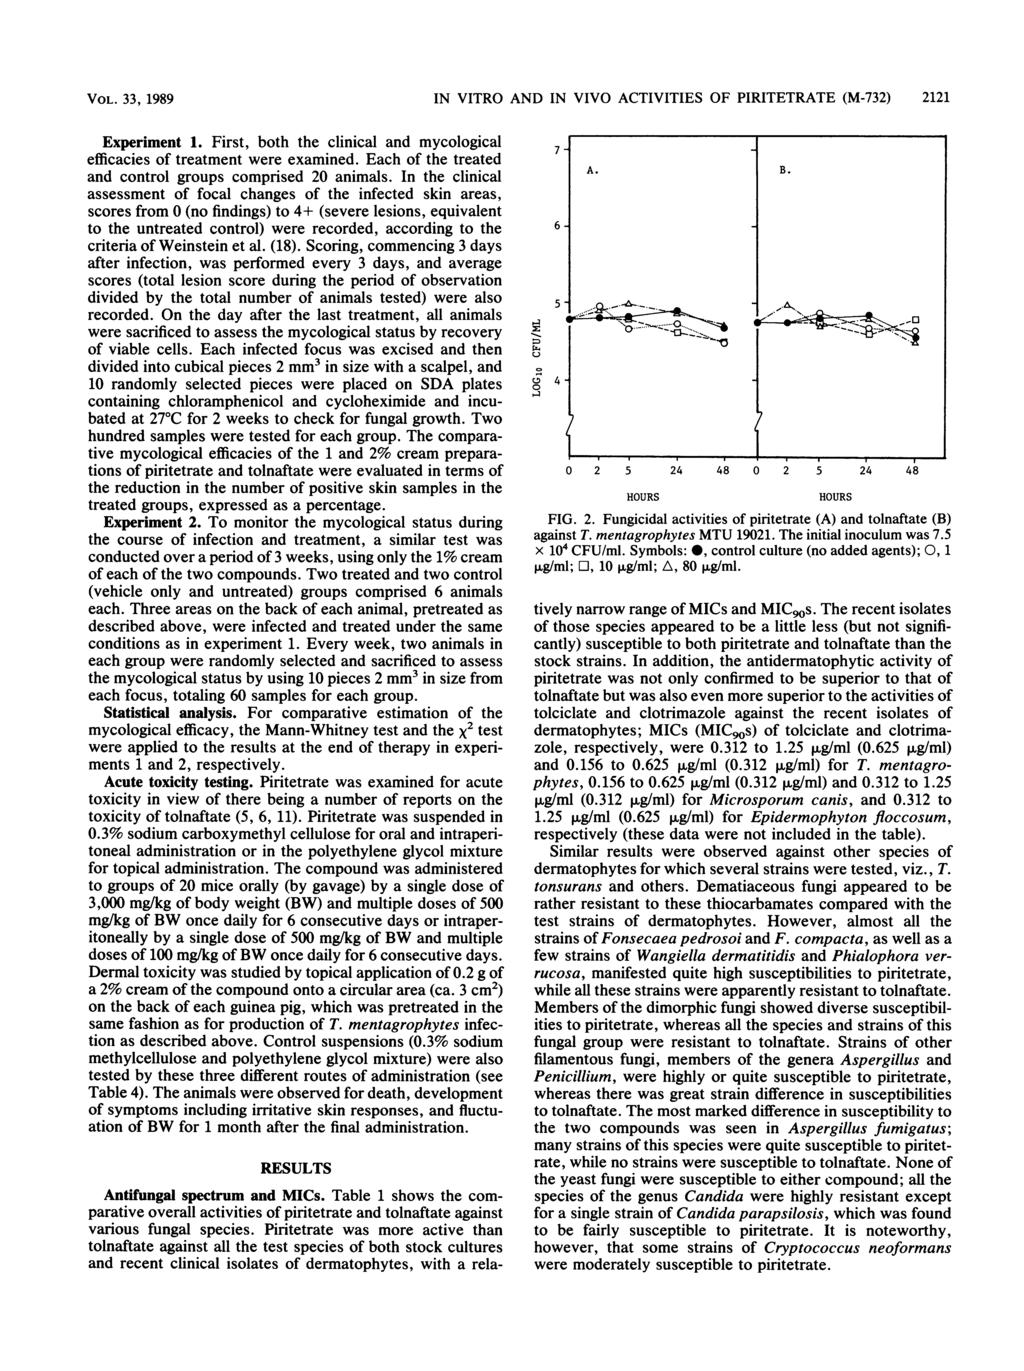 VOL. 33, 1989 IN VITRO AND IN VIVO ACTIVITIES OF PIRITETRATE (M-732) 2121 Experiment 1. First, both the clinical and mycological efficacies of treatment were examined.